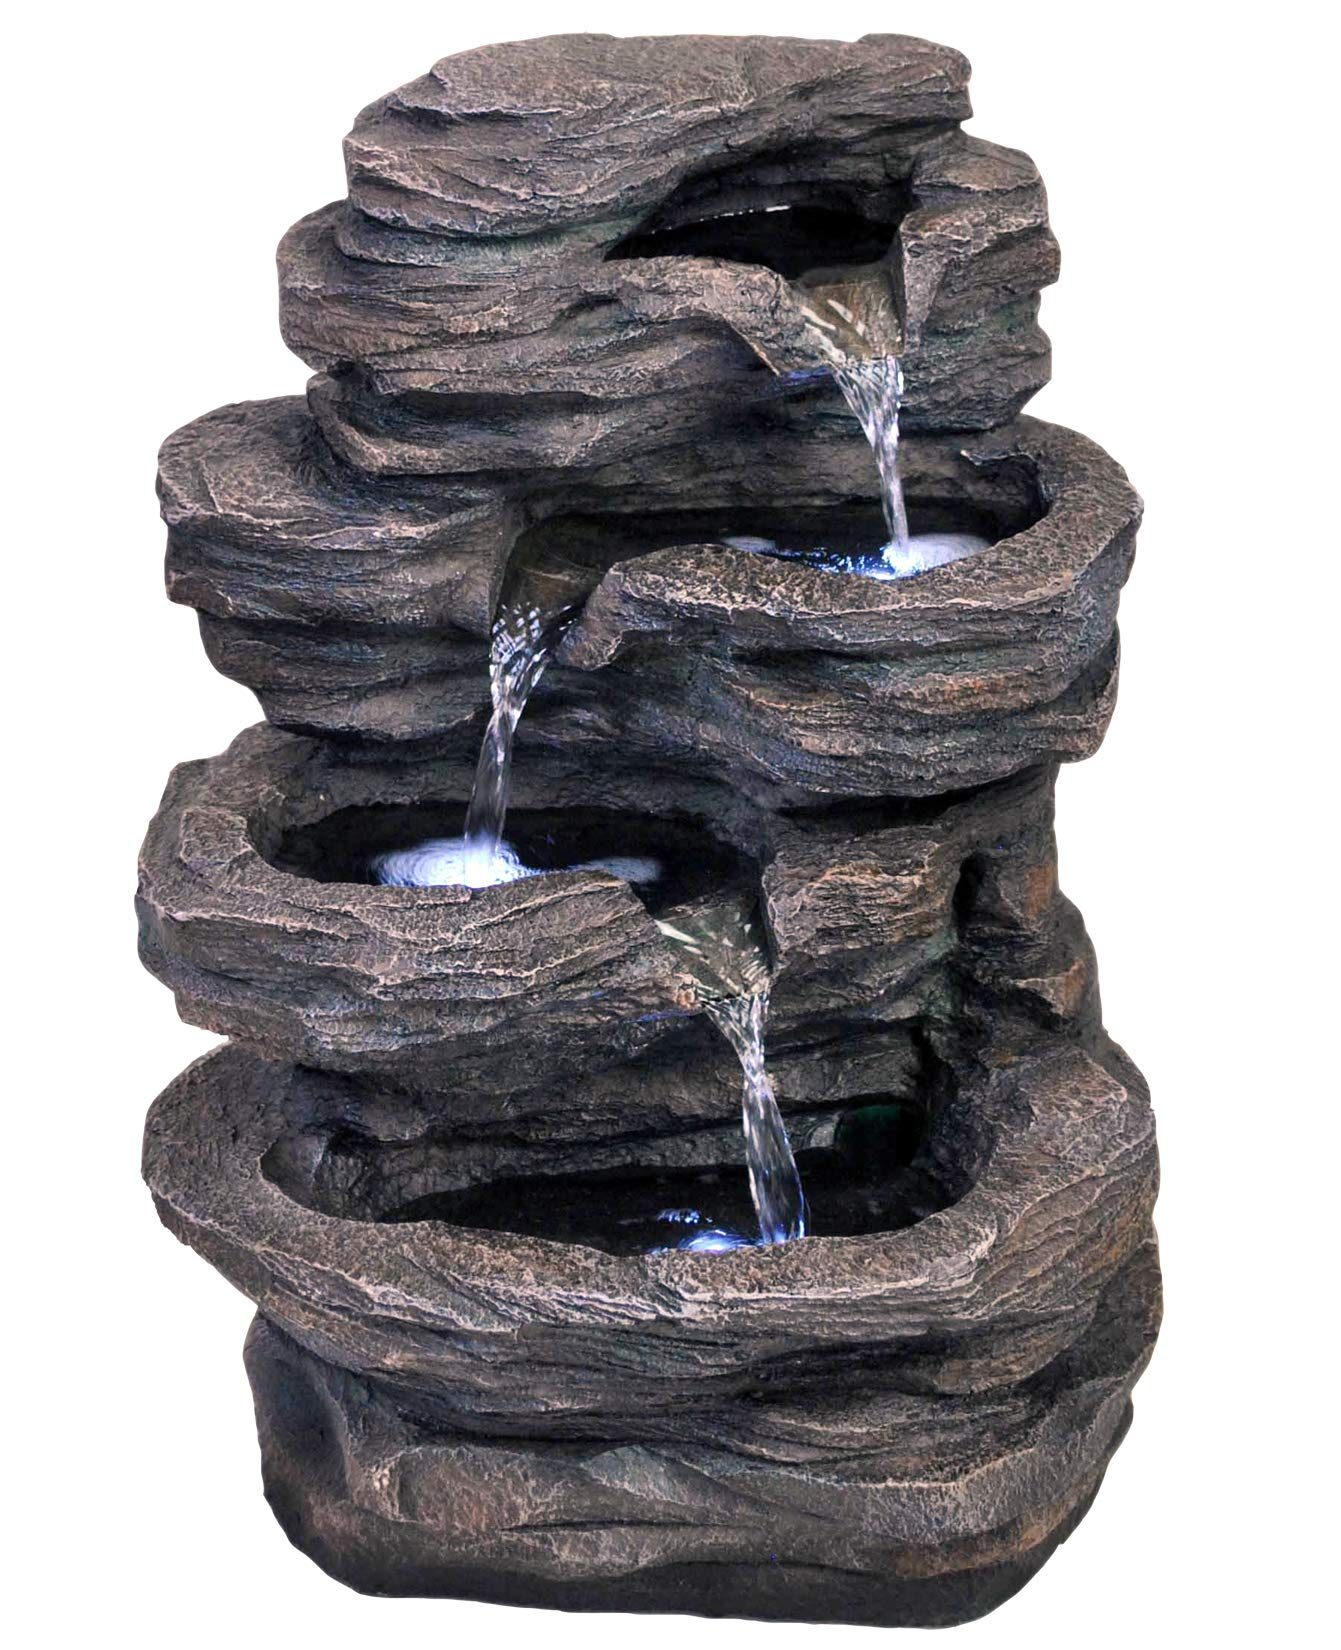 19'' Classic Rock Waterfall Fountain w/LED Lights: Medium Outdoor Water Feature for Gardens & Patios. Hand-Crafted Design. HF-R25-21LT